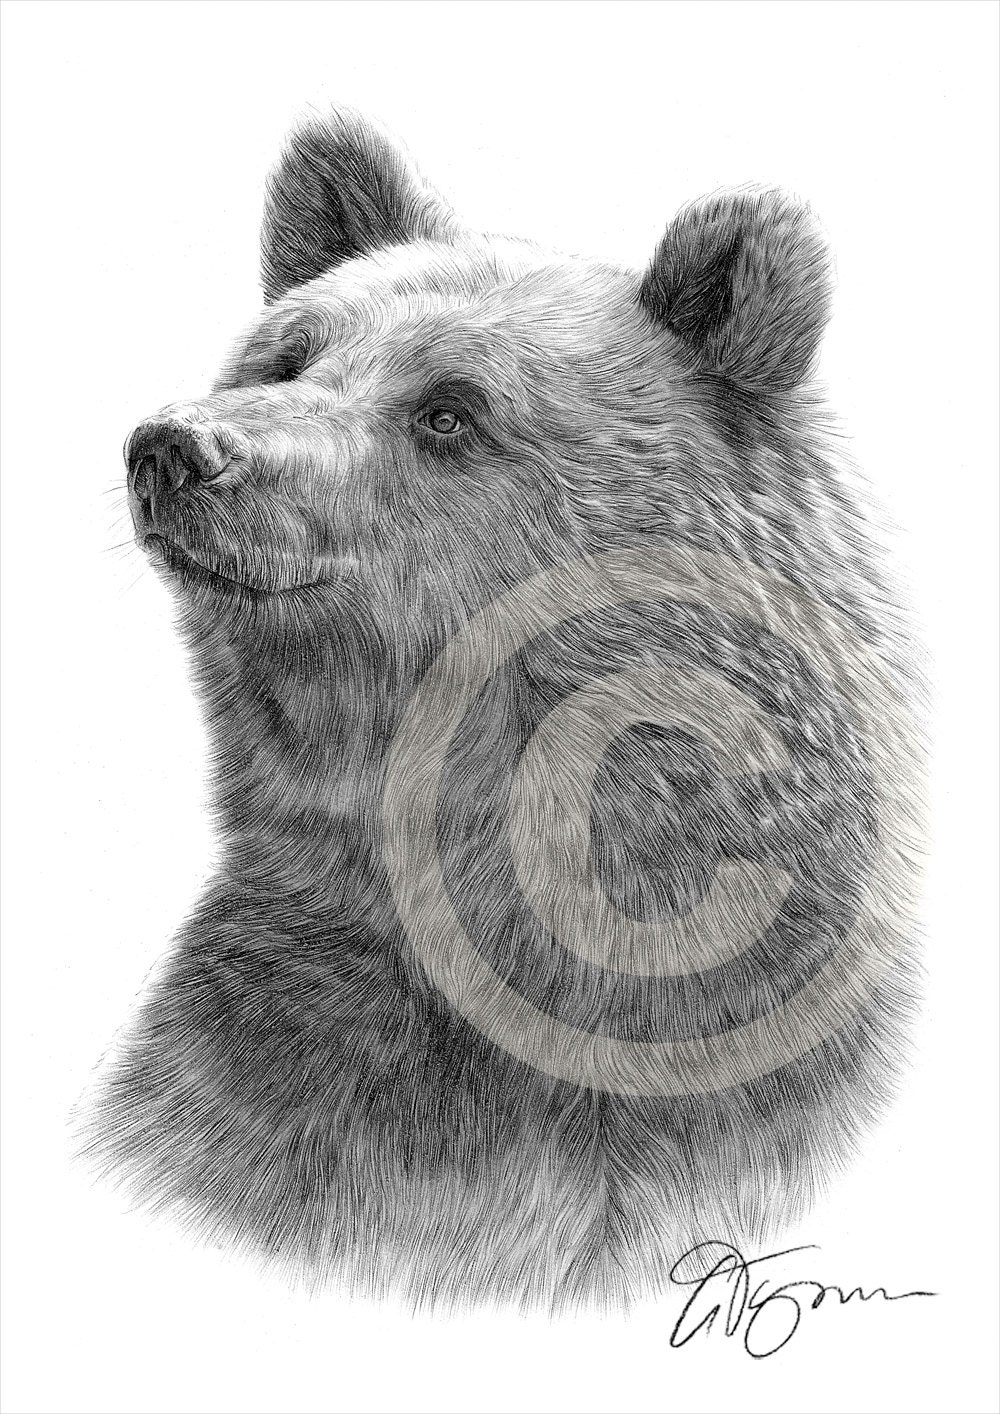 Ours grizzly dessin estampe art animal oeuvre sign e par - Dessin de grizzly ...